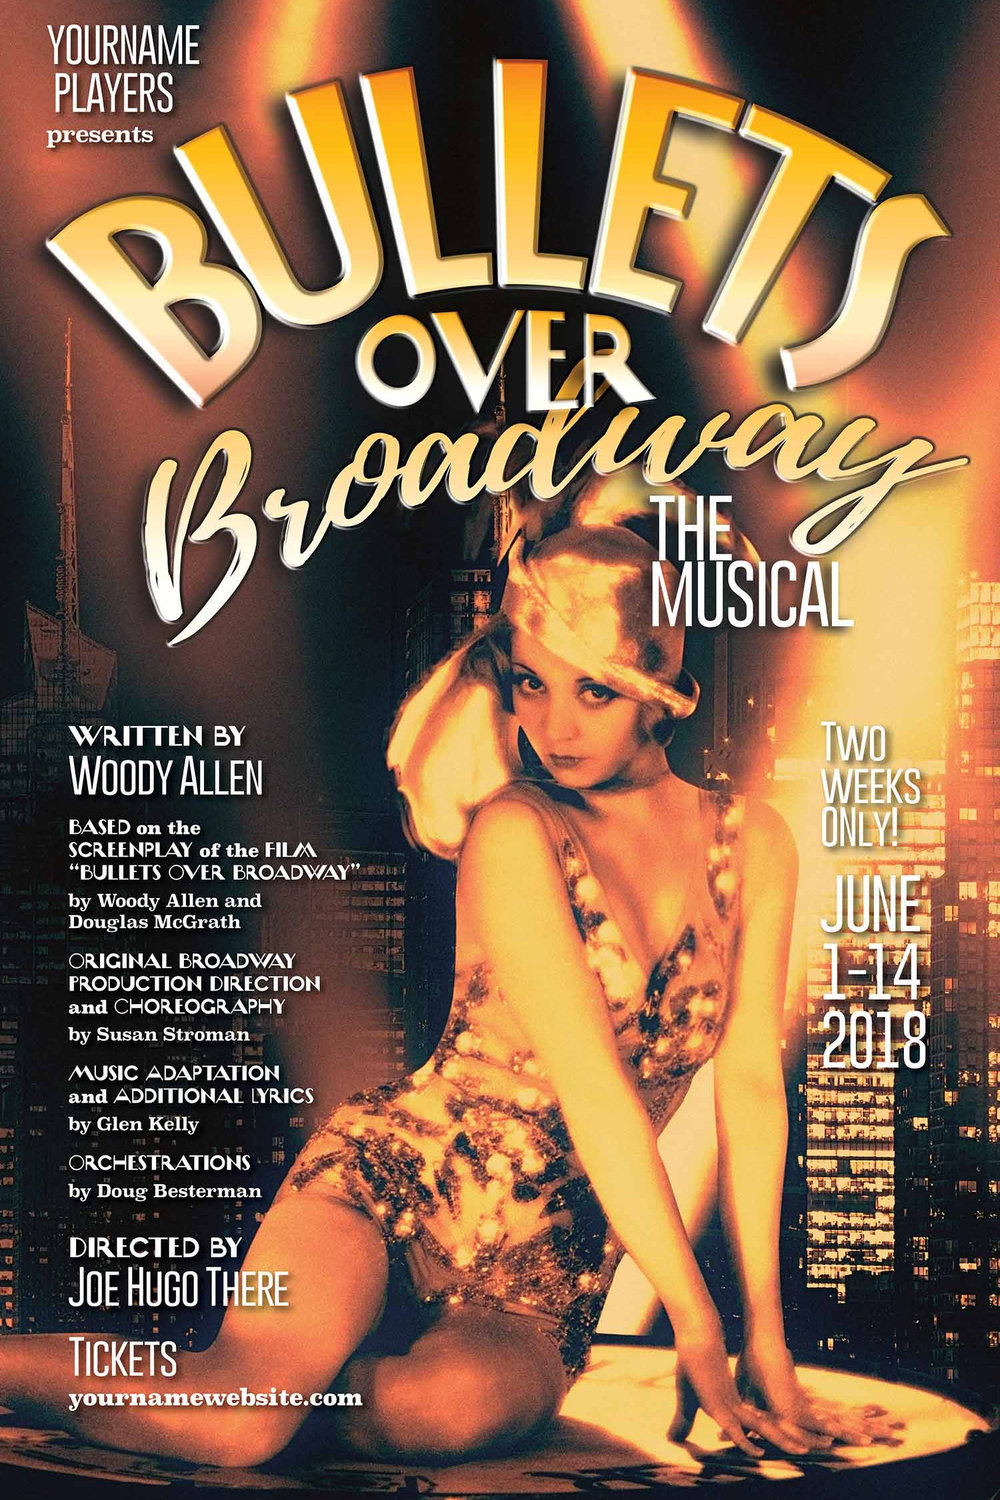 Bullets-Over-Broadway_Drama-Queen-Graphics-Theater-Branding-med.jpg